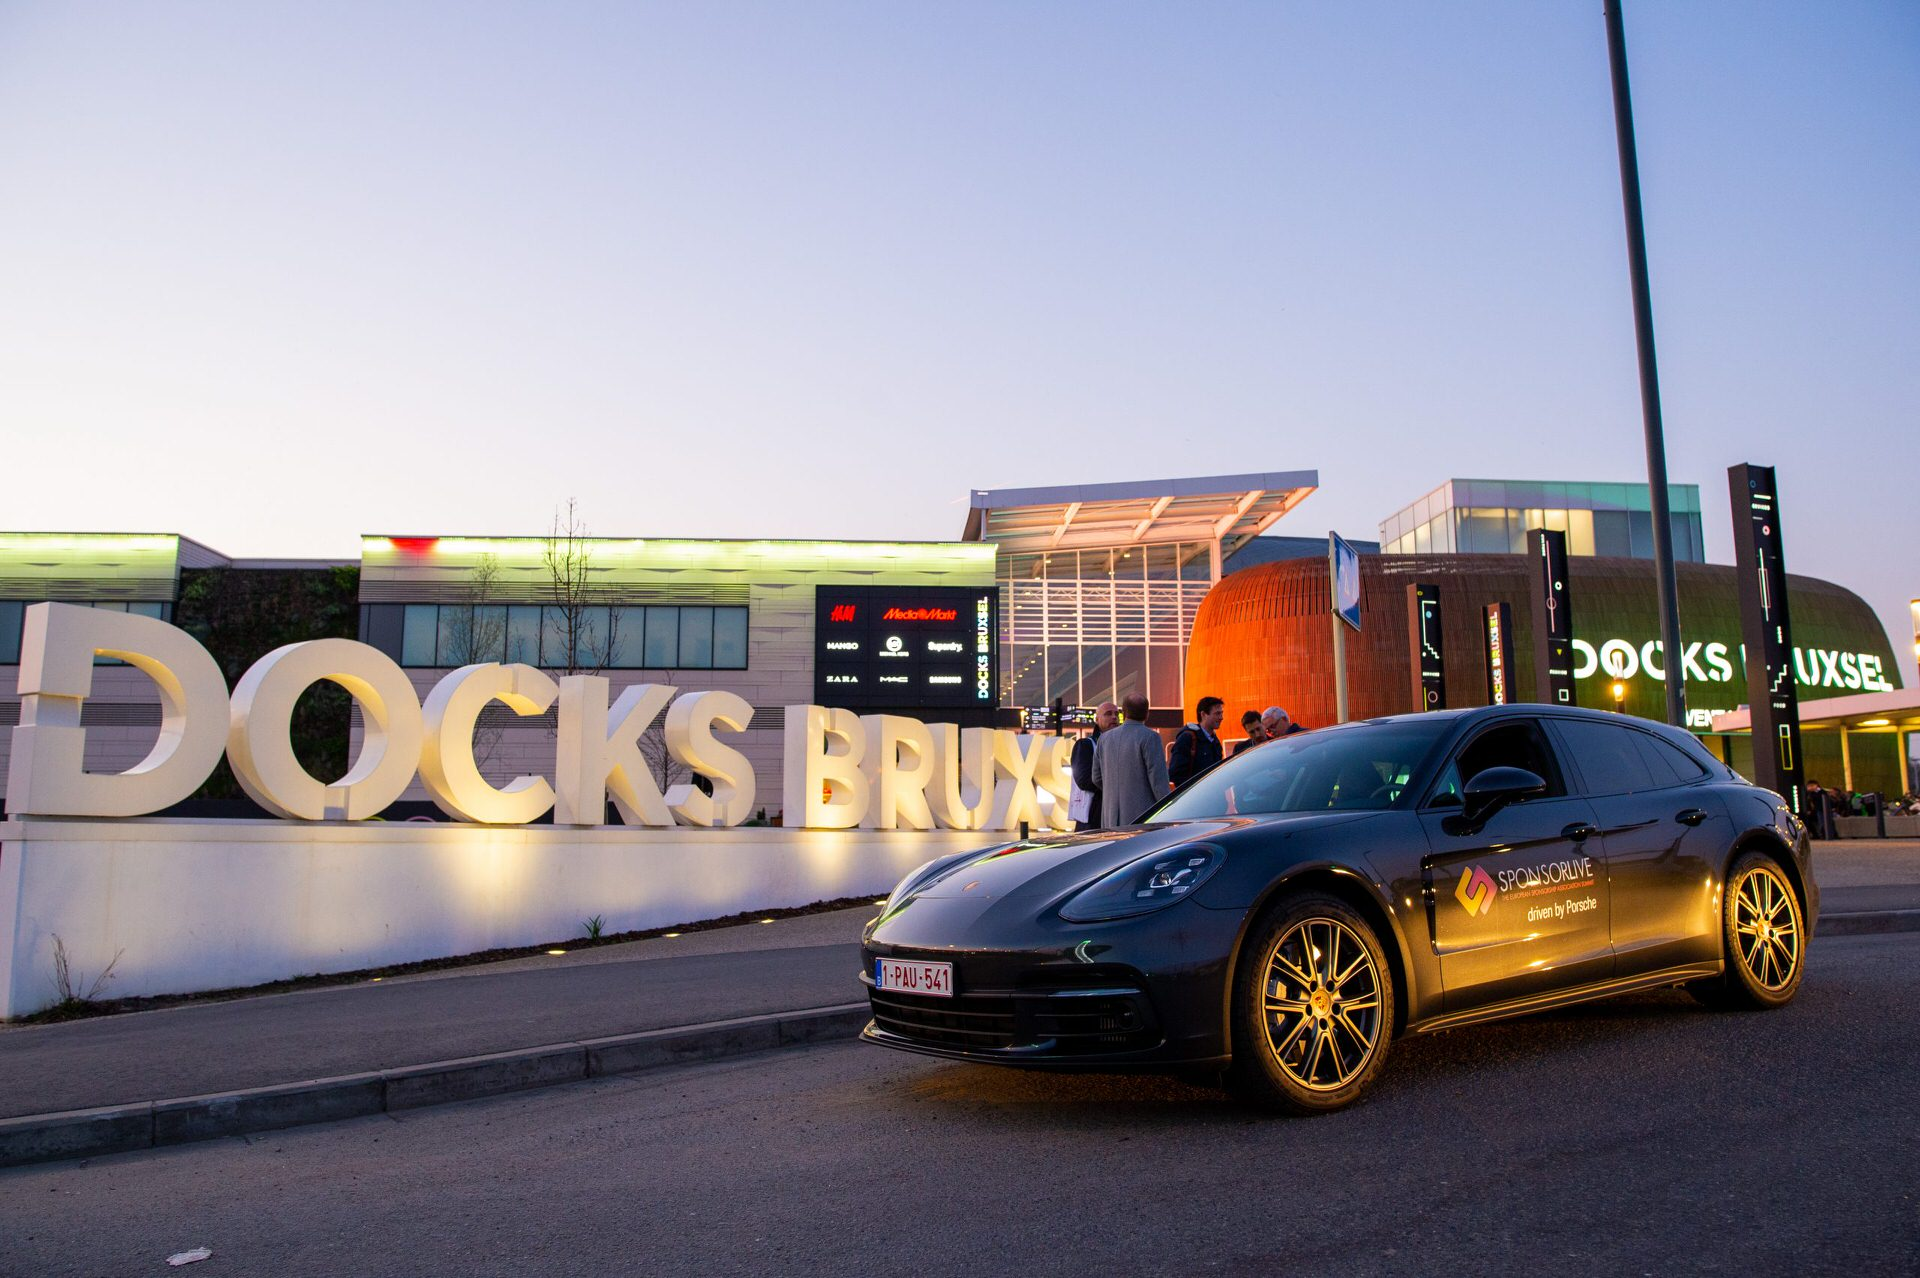 Night view of Docks Drome Brussels with Porsche courtesy car